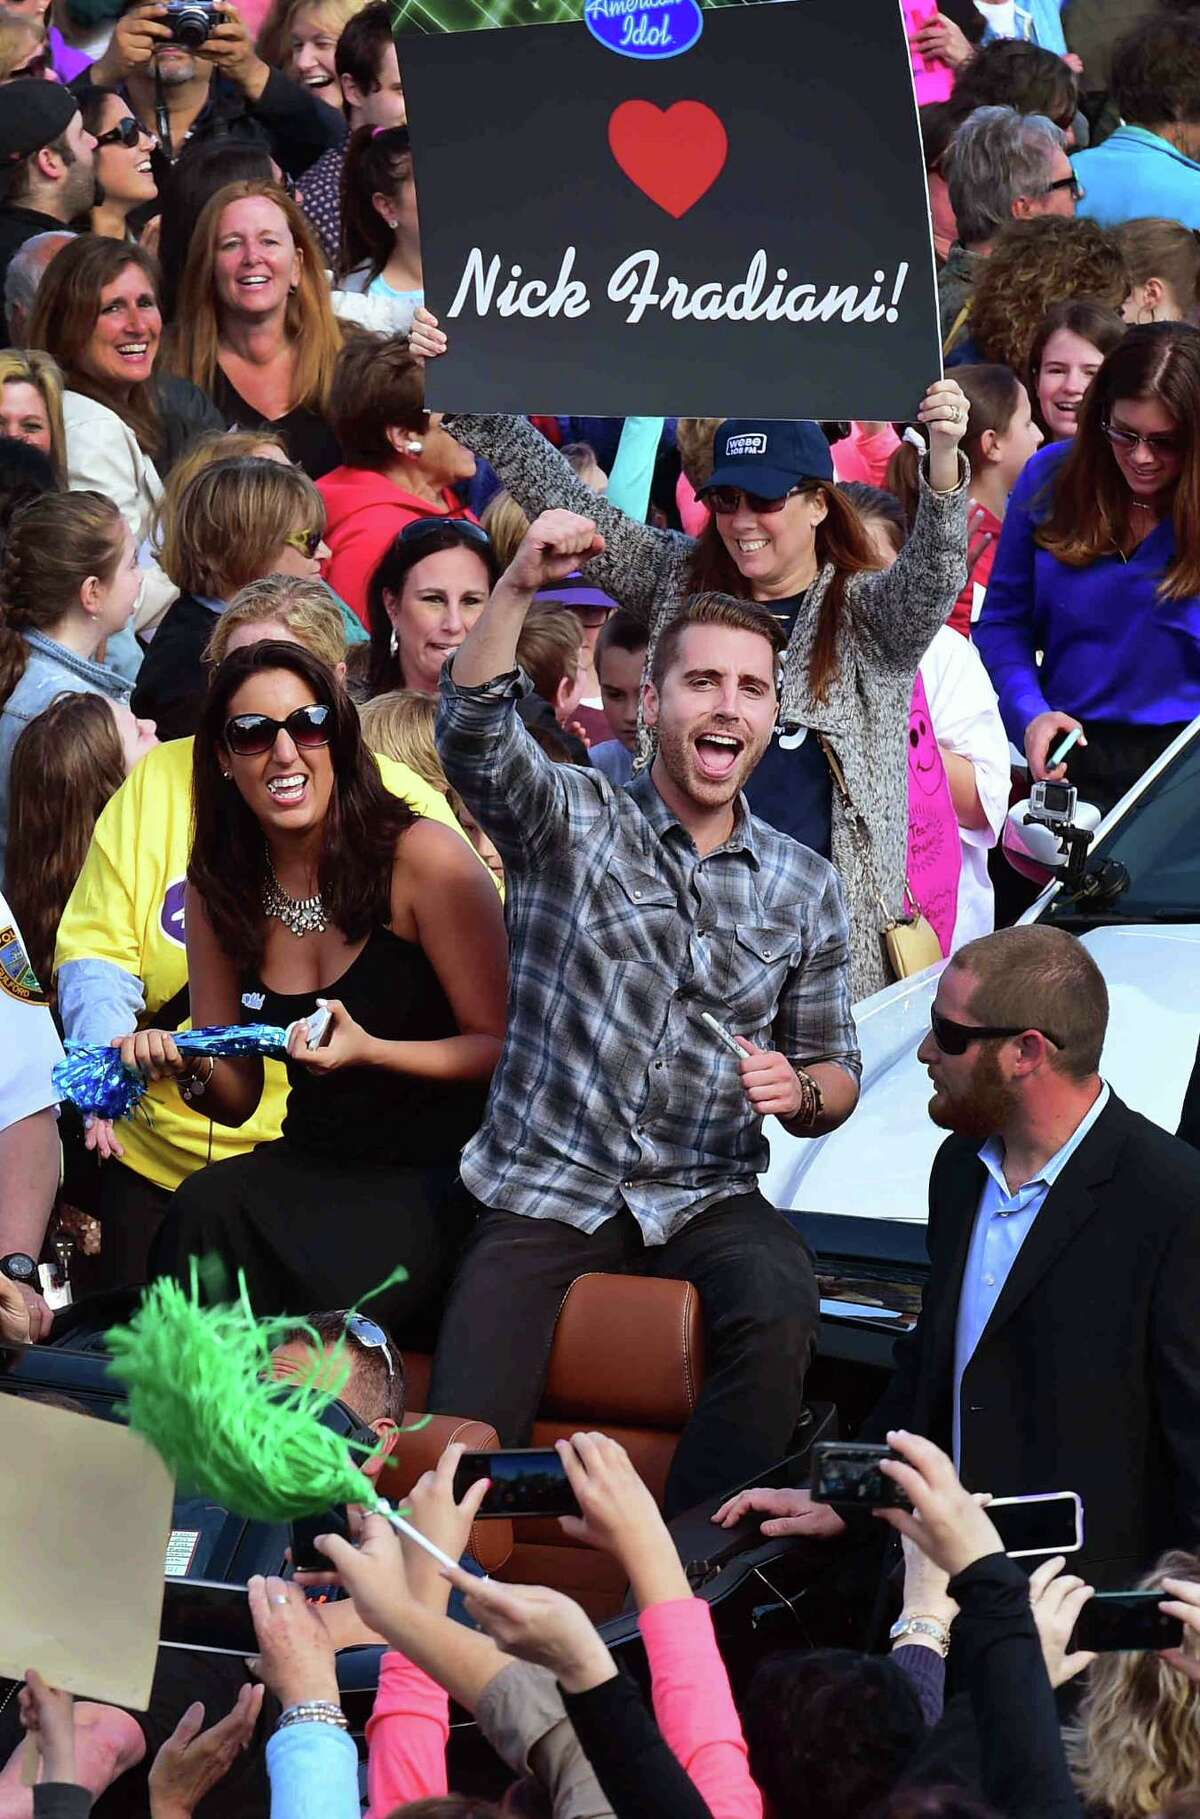 (Peter Hvizdak - New Haven Register) American Idol's Nick Fradiani, of Guilford, gives a fist pump to a familiar face during a welcome home parade on Whitfield Street in Guilford, Connecticut Friday, May 1, 2015.